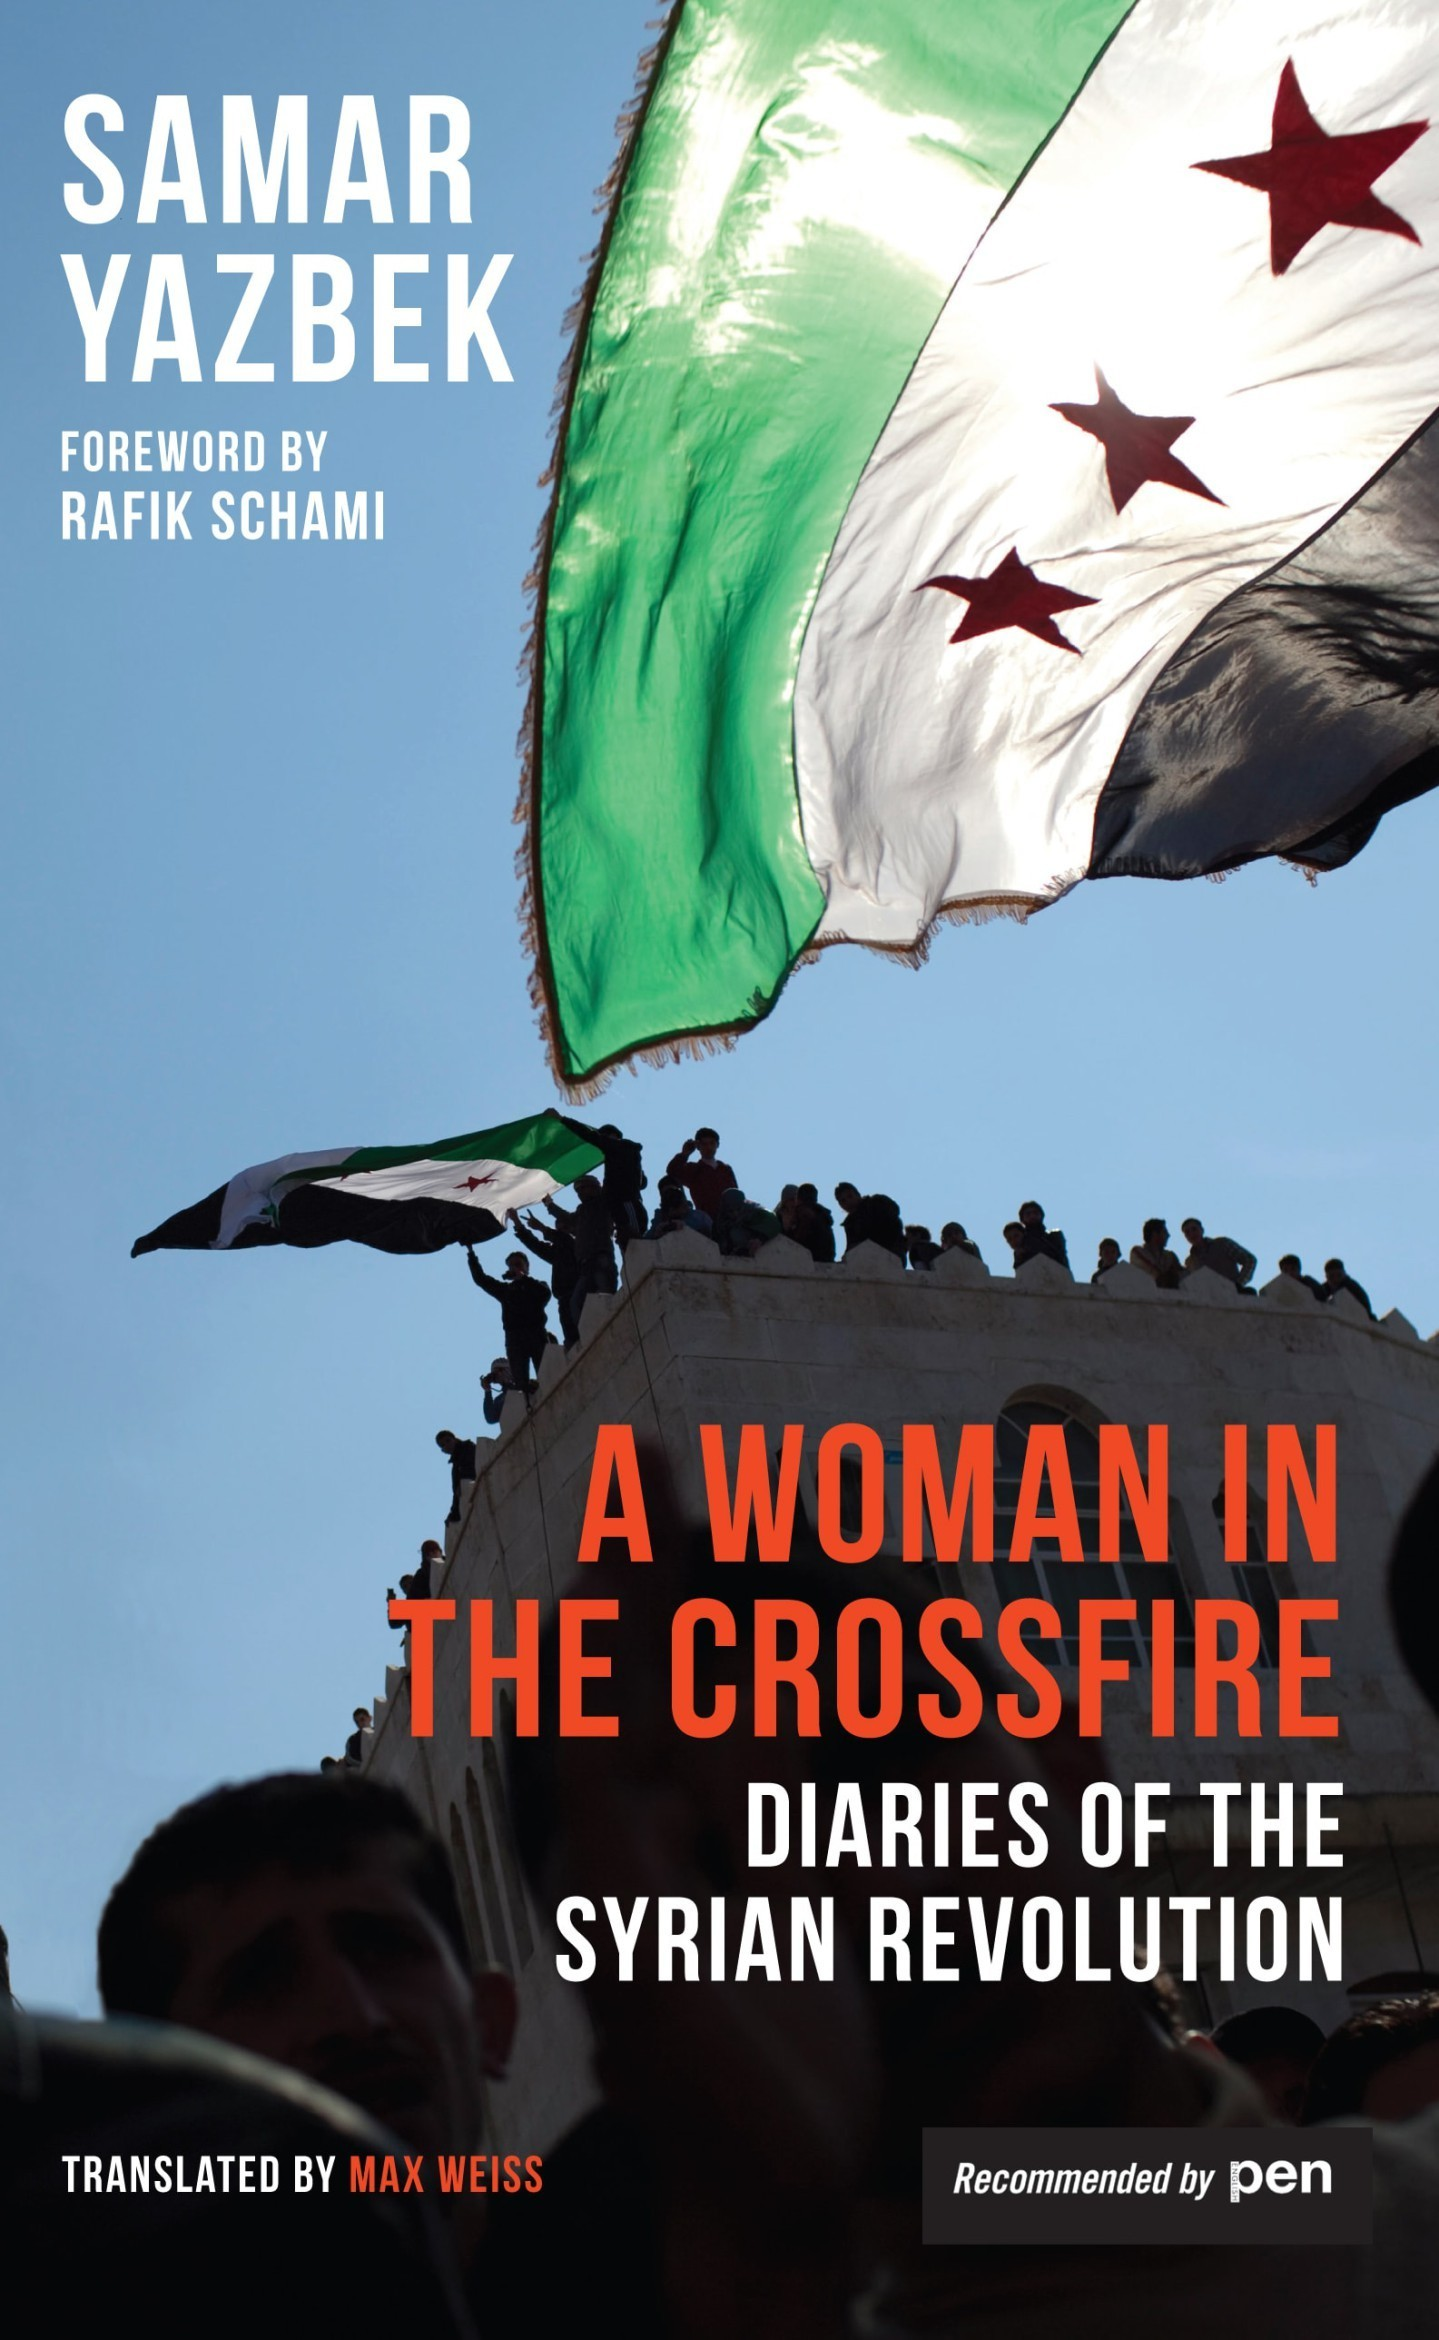 Samar Yazbek's A Women in the Crossfire